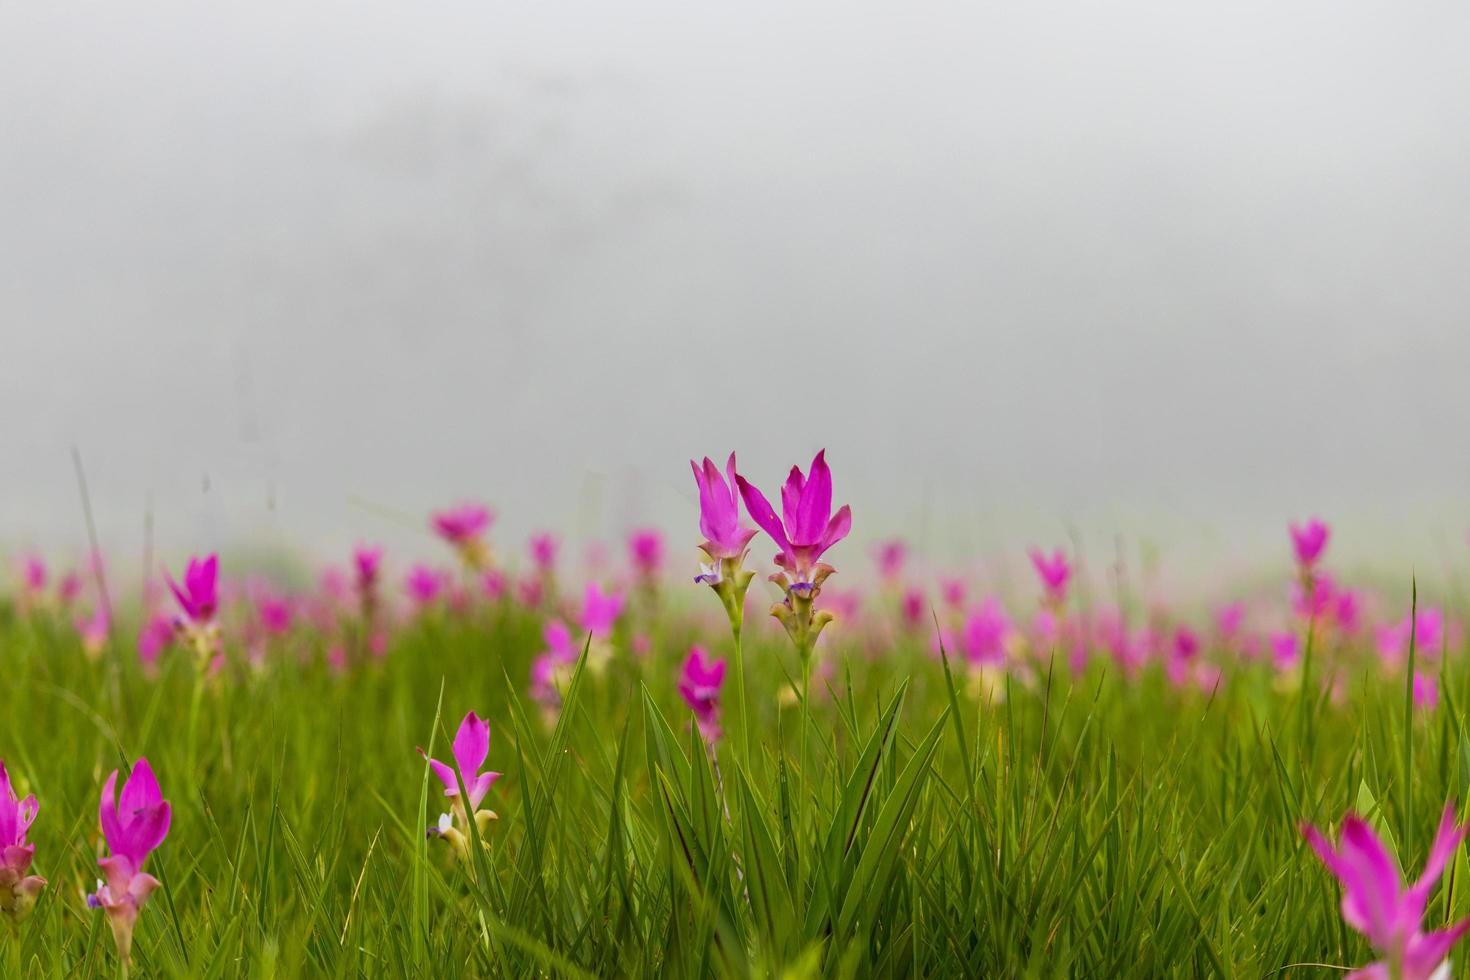 Pink siam tulips blooming in a field photo